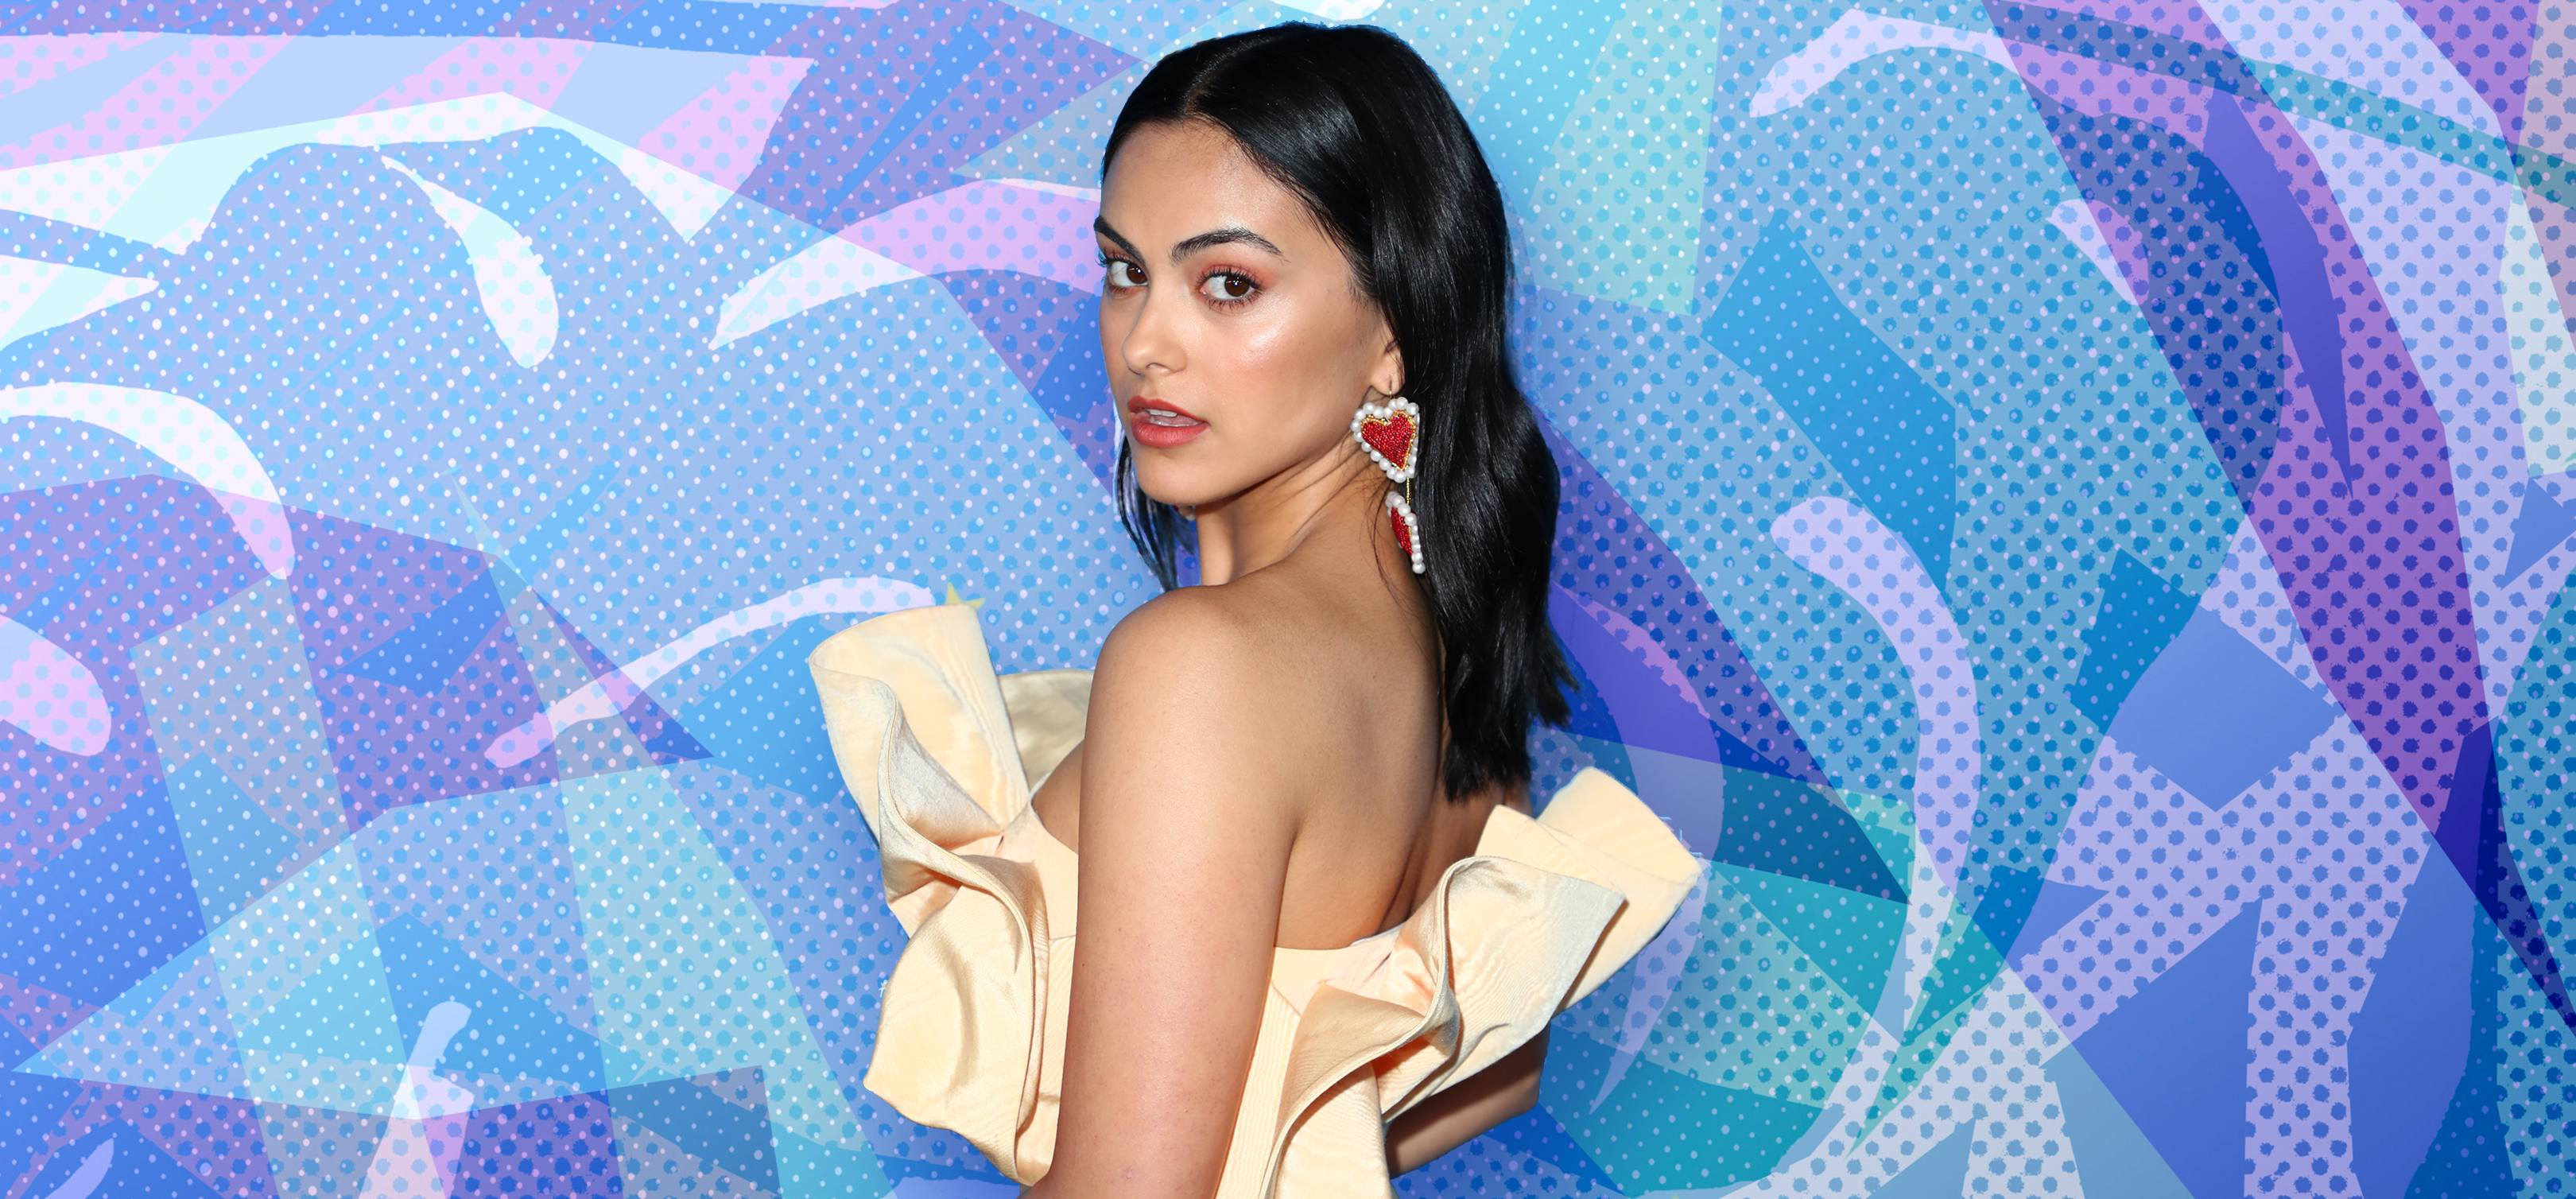 Riverdale star Camila Mendes opens up about how she overcame sexual assault